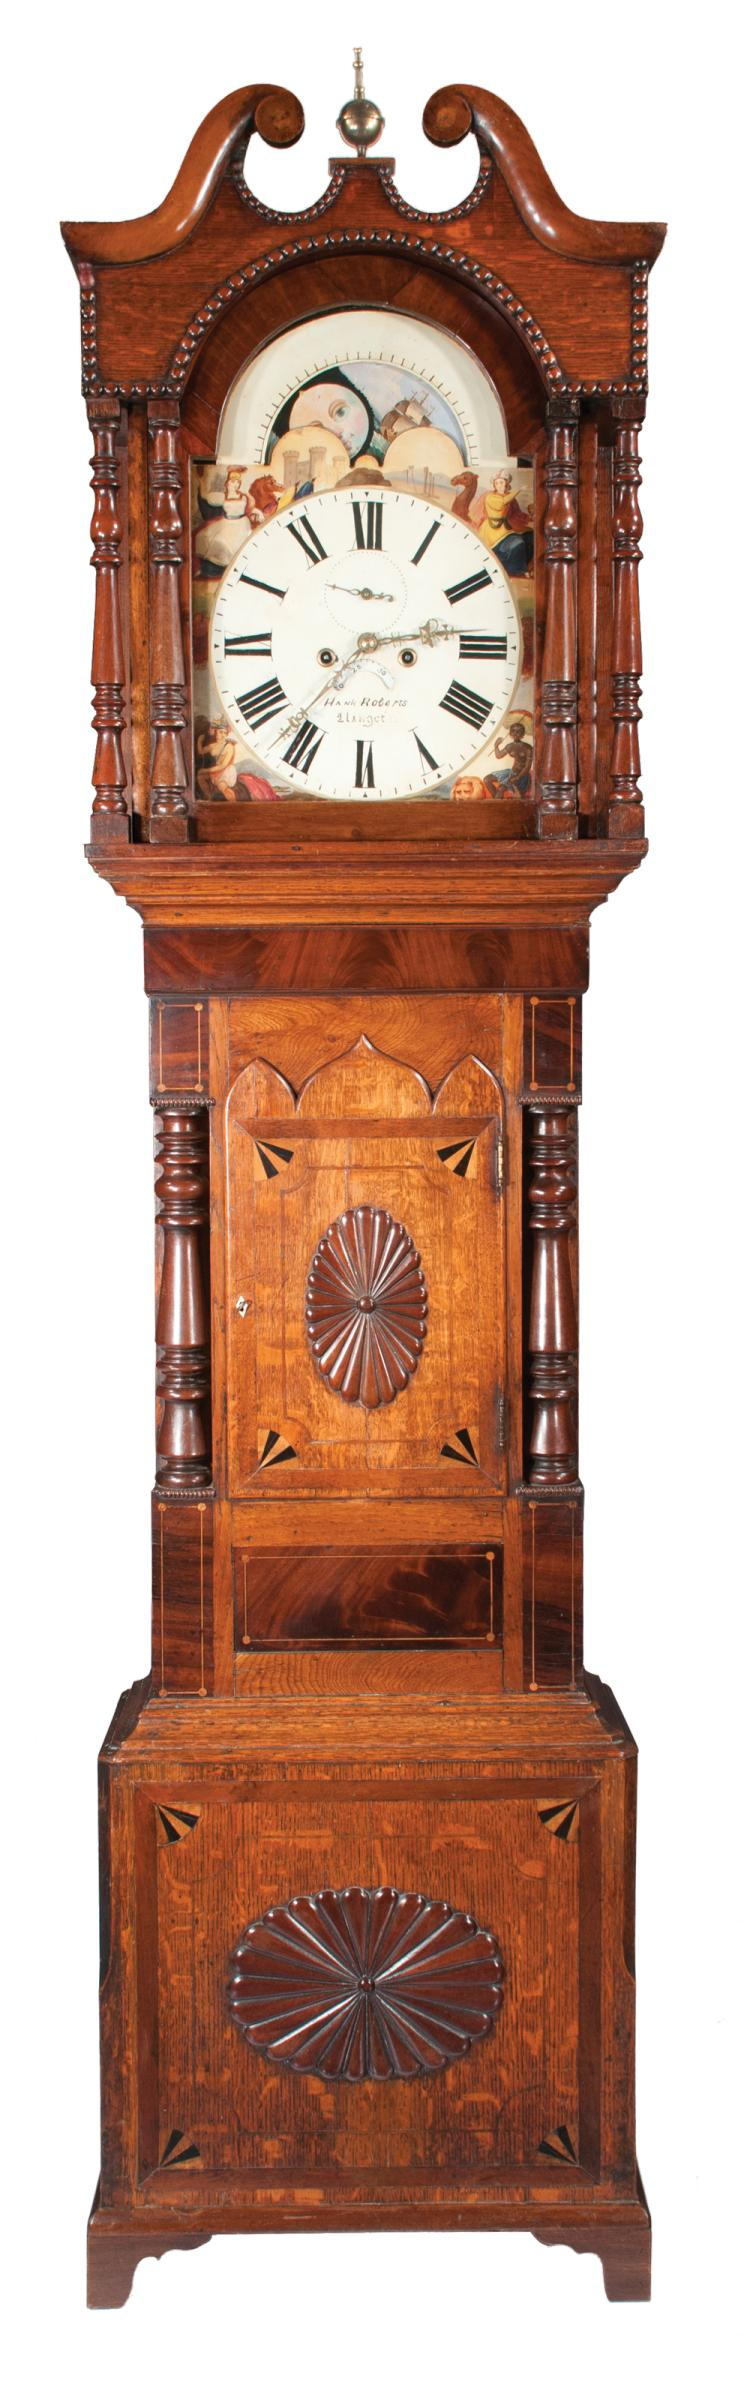 Chippendale oak and mahogany grandfather clock with broken arch pediment, moon phase movement, signed Hank Roberts, c.1860, 52